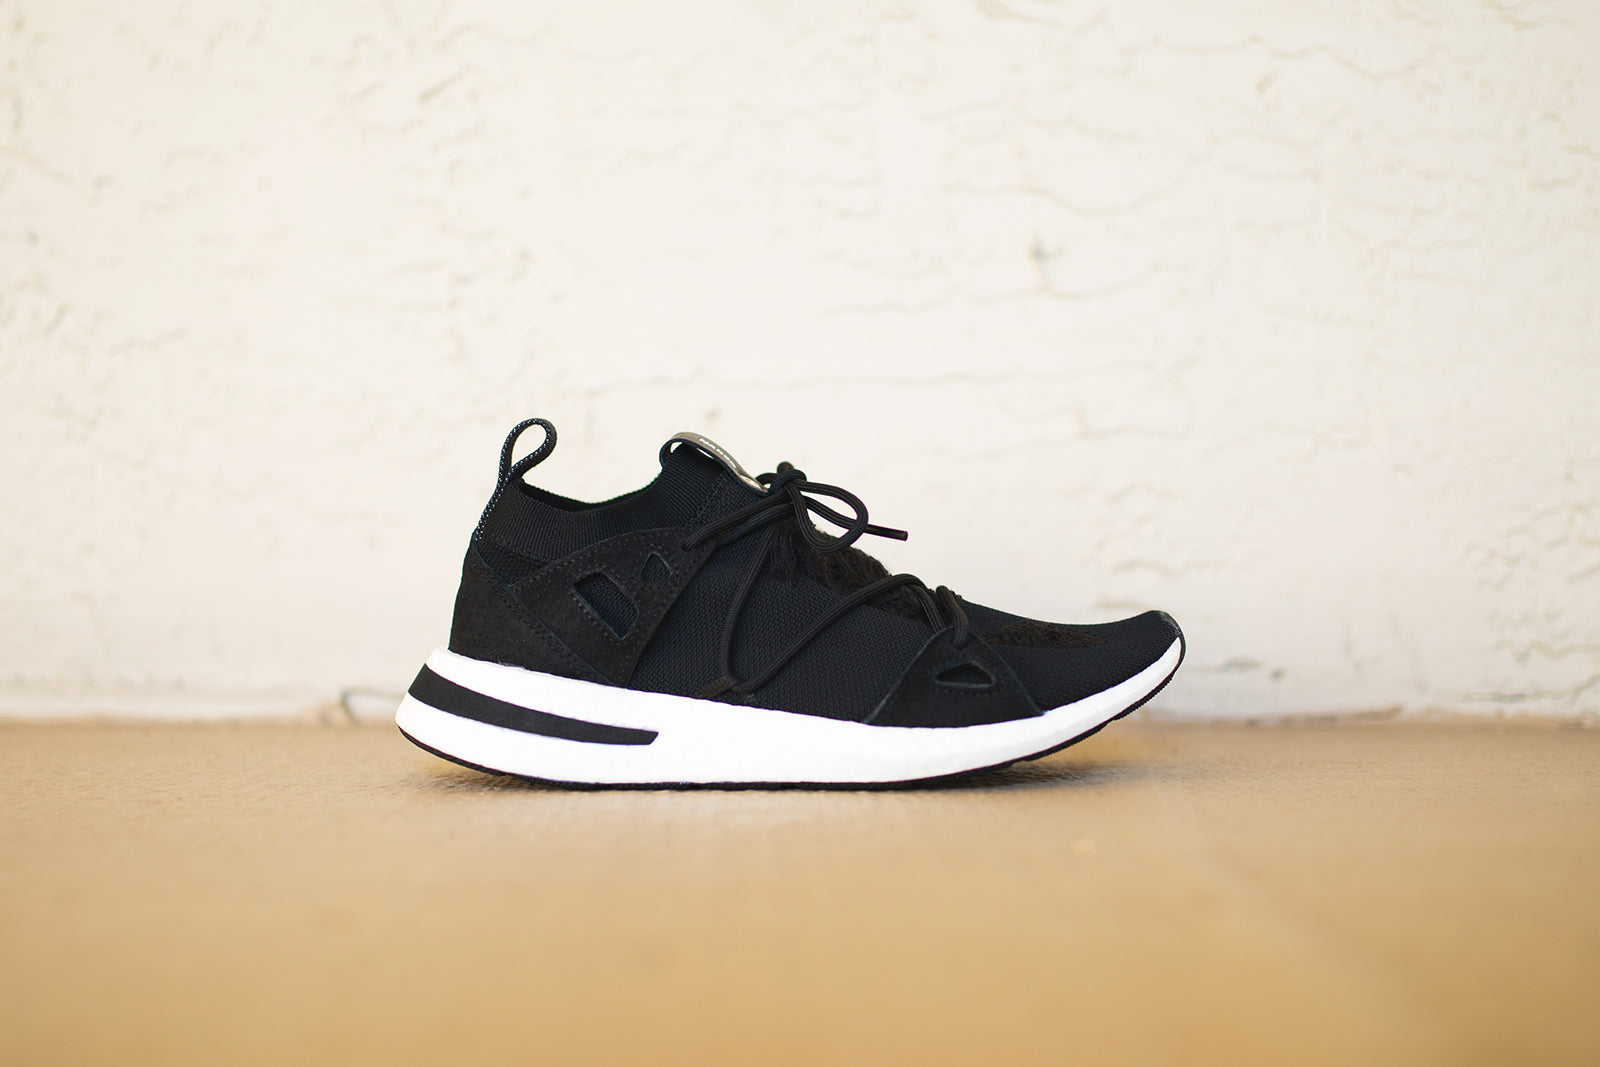 brand new 7f62d cb328 ... Available adidas Consortium x Naked WMNS Arkyn - Black White ...